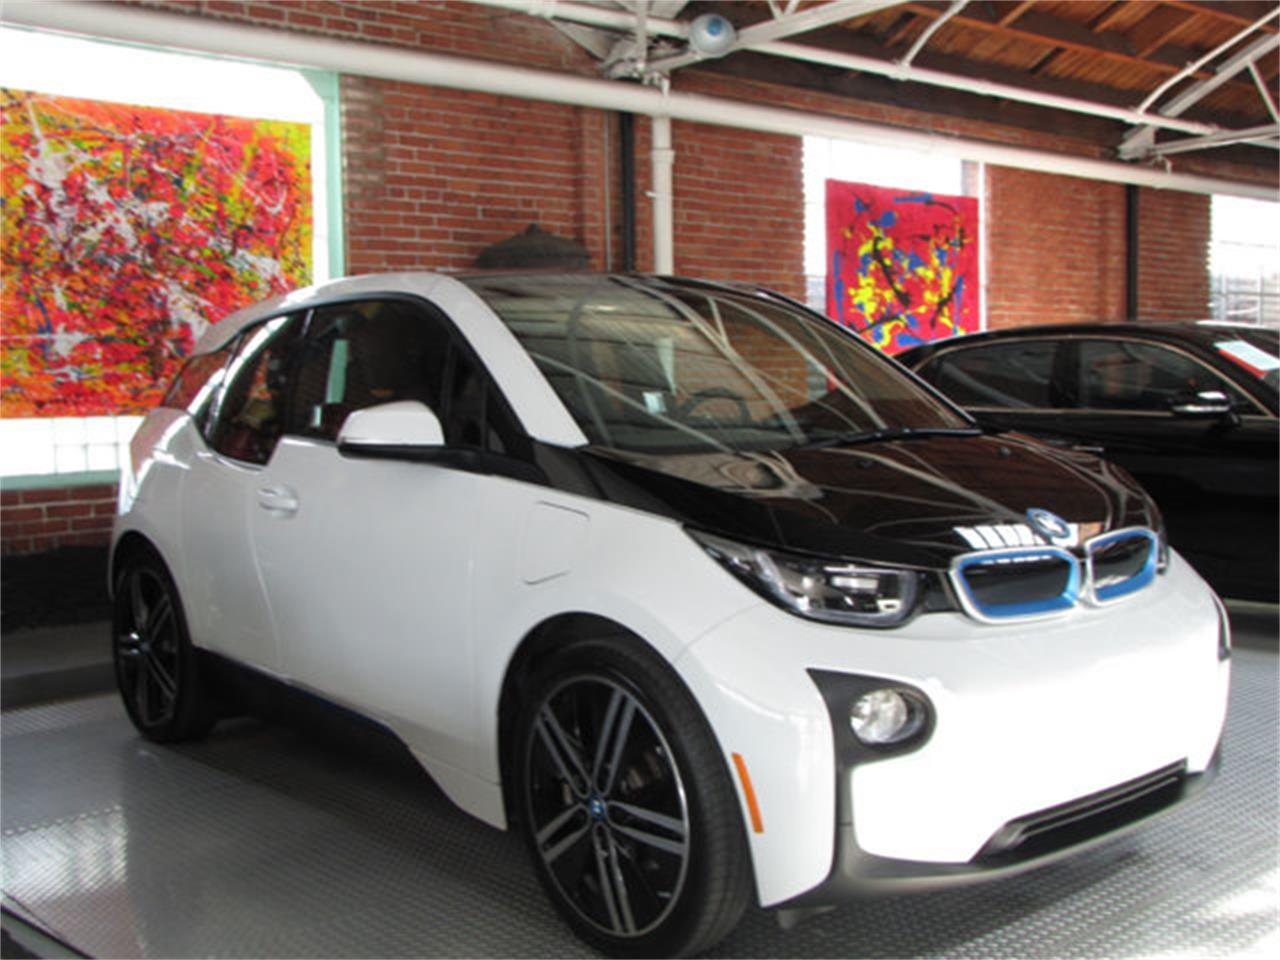 Large Picture of 2014 BMW i3 - $17,900.00 Offered by JEM Motor Corp. - LFVL